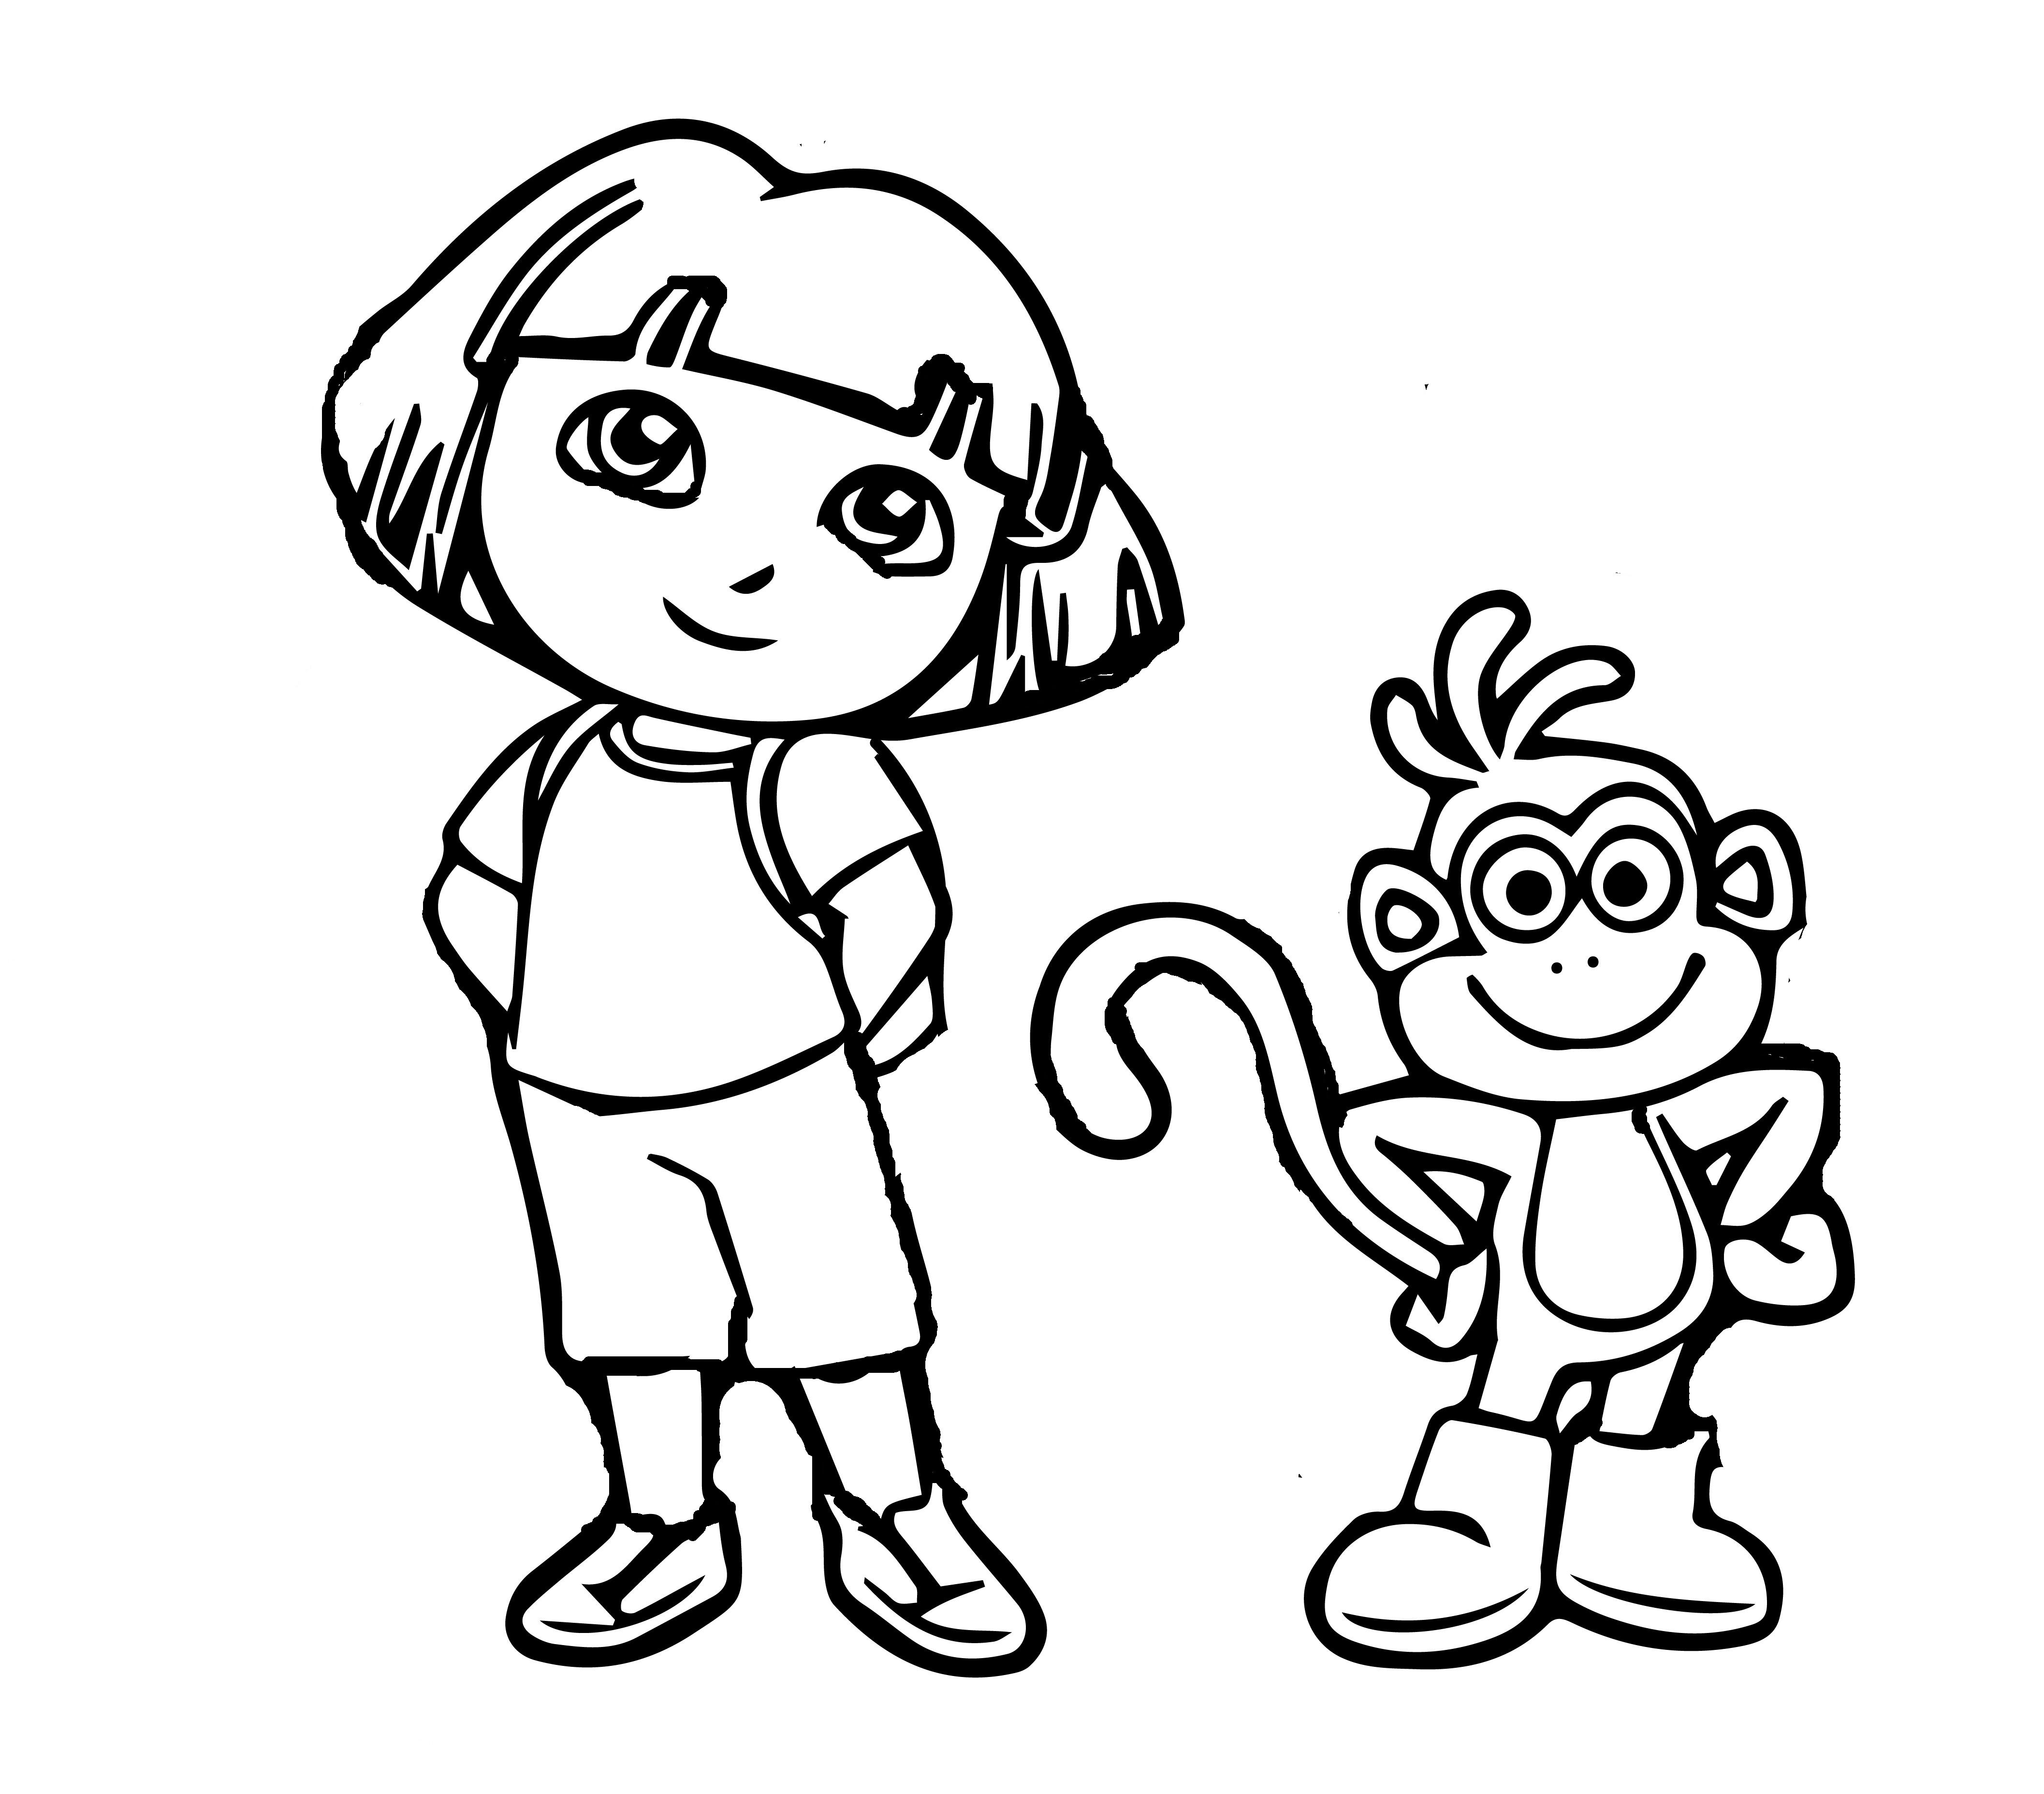 Dora The Explorer Coloring Pages And Sheets For Kids. | Dora The ...